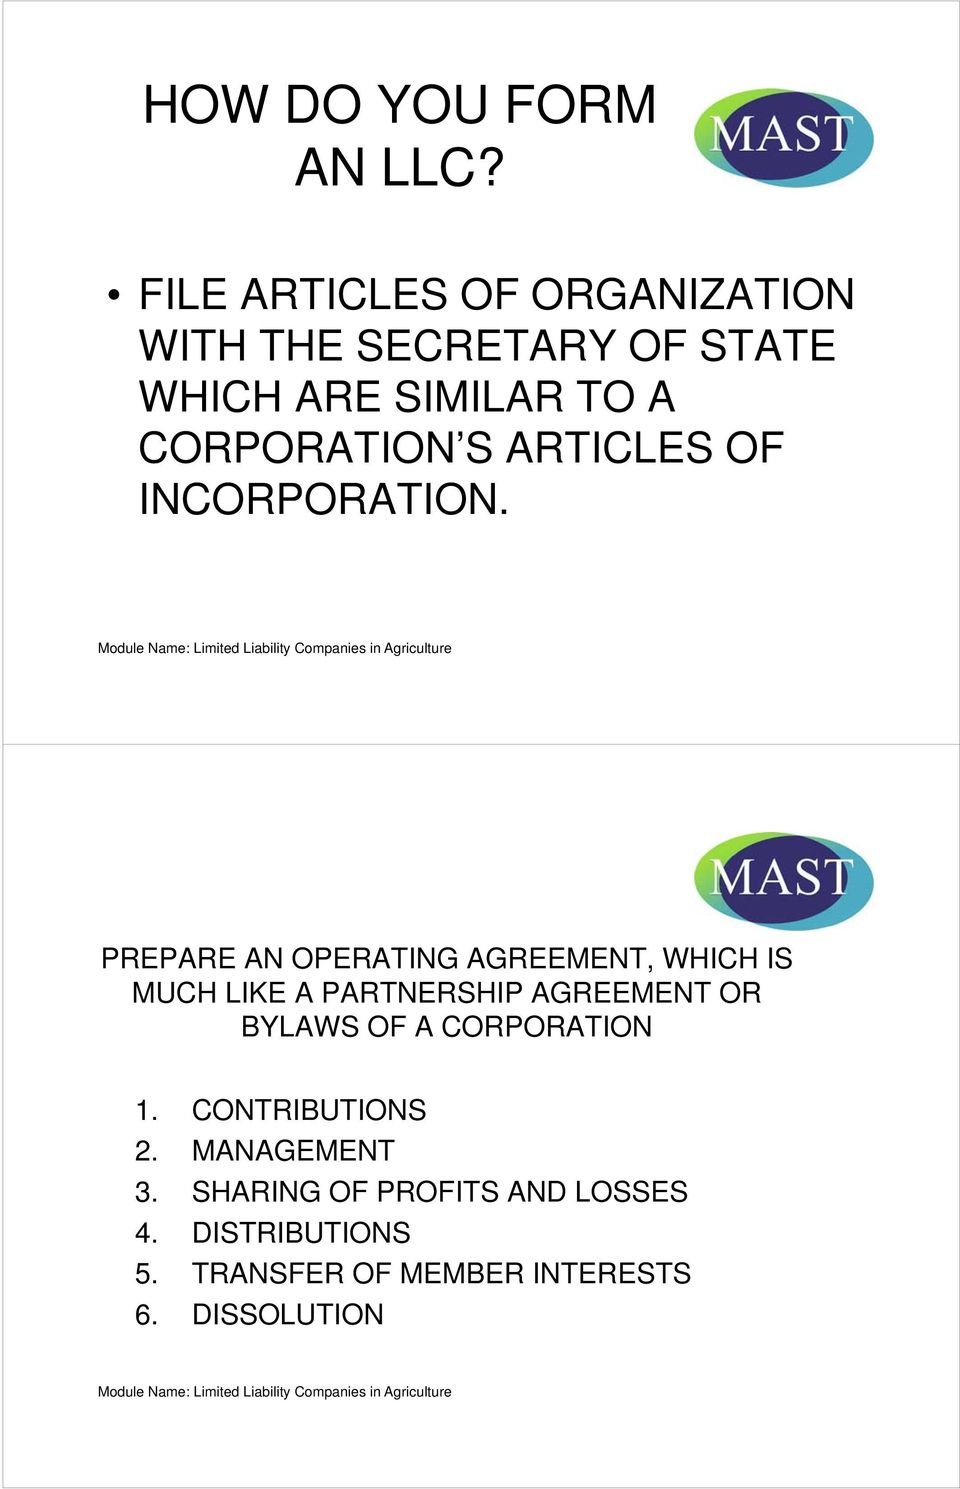 S ARTICLES OF INCORPORATION.